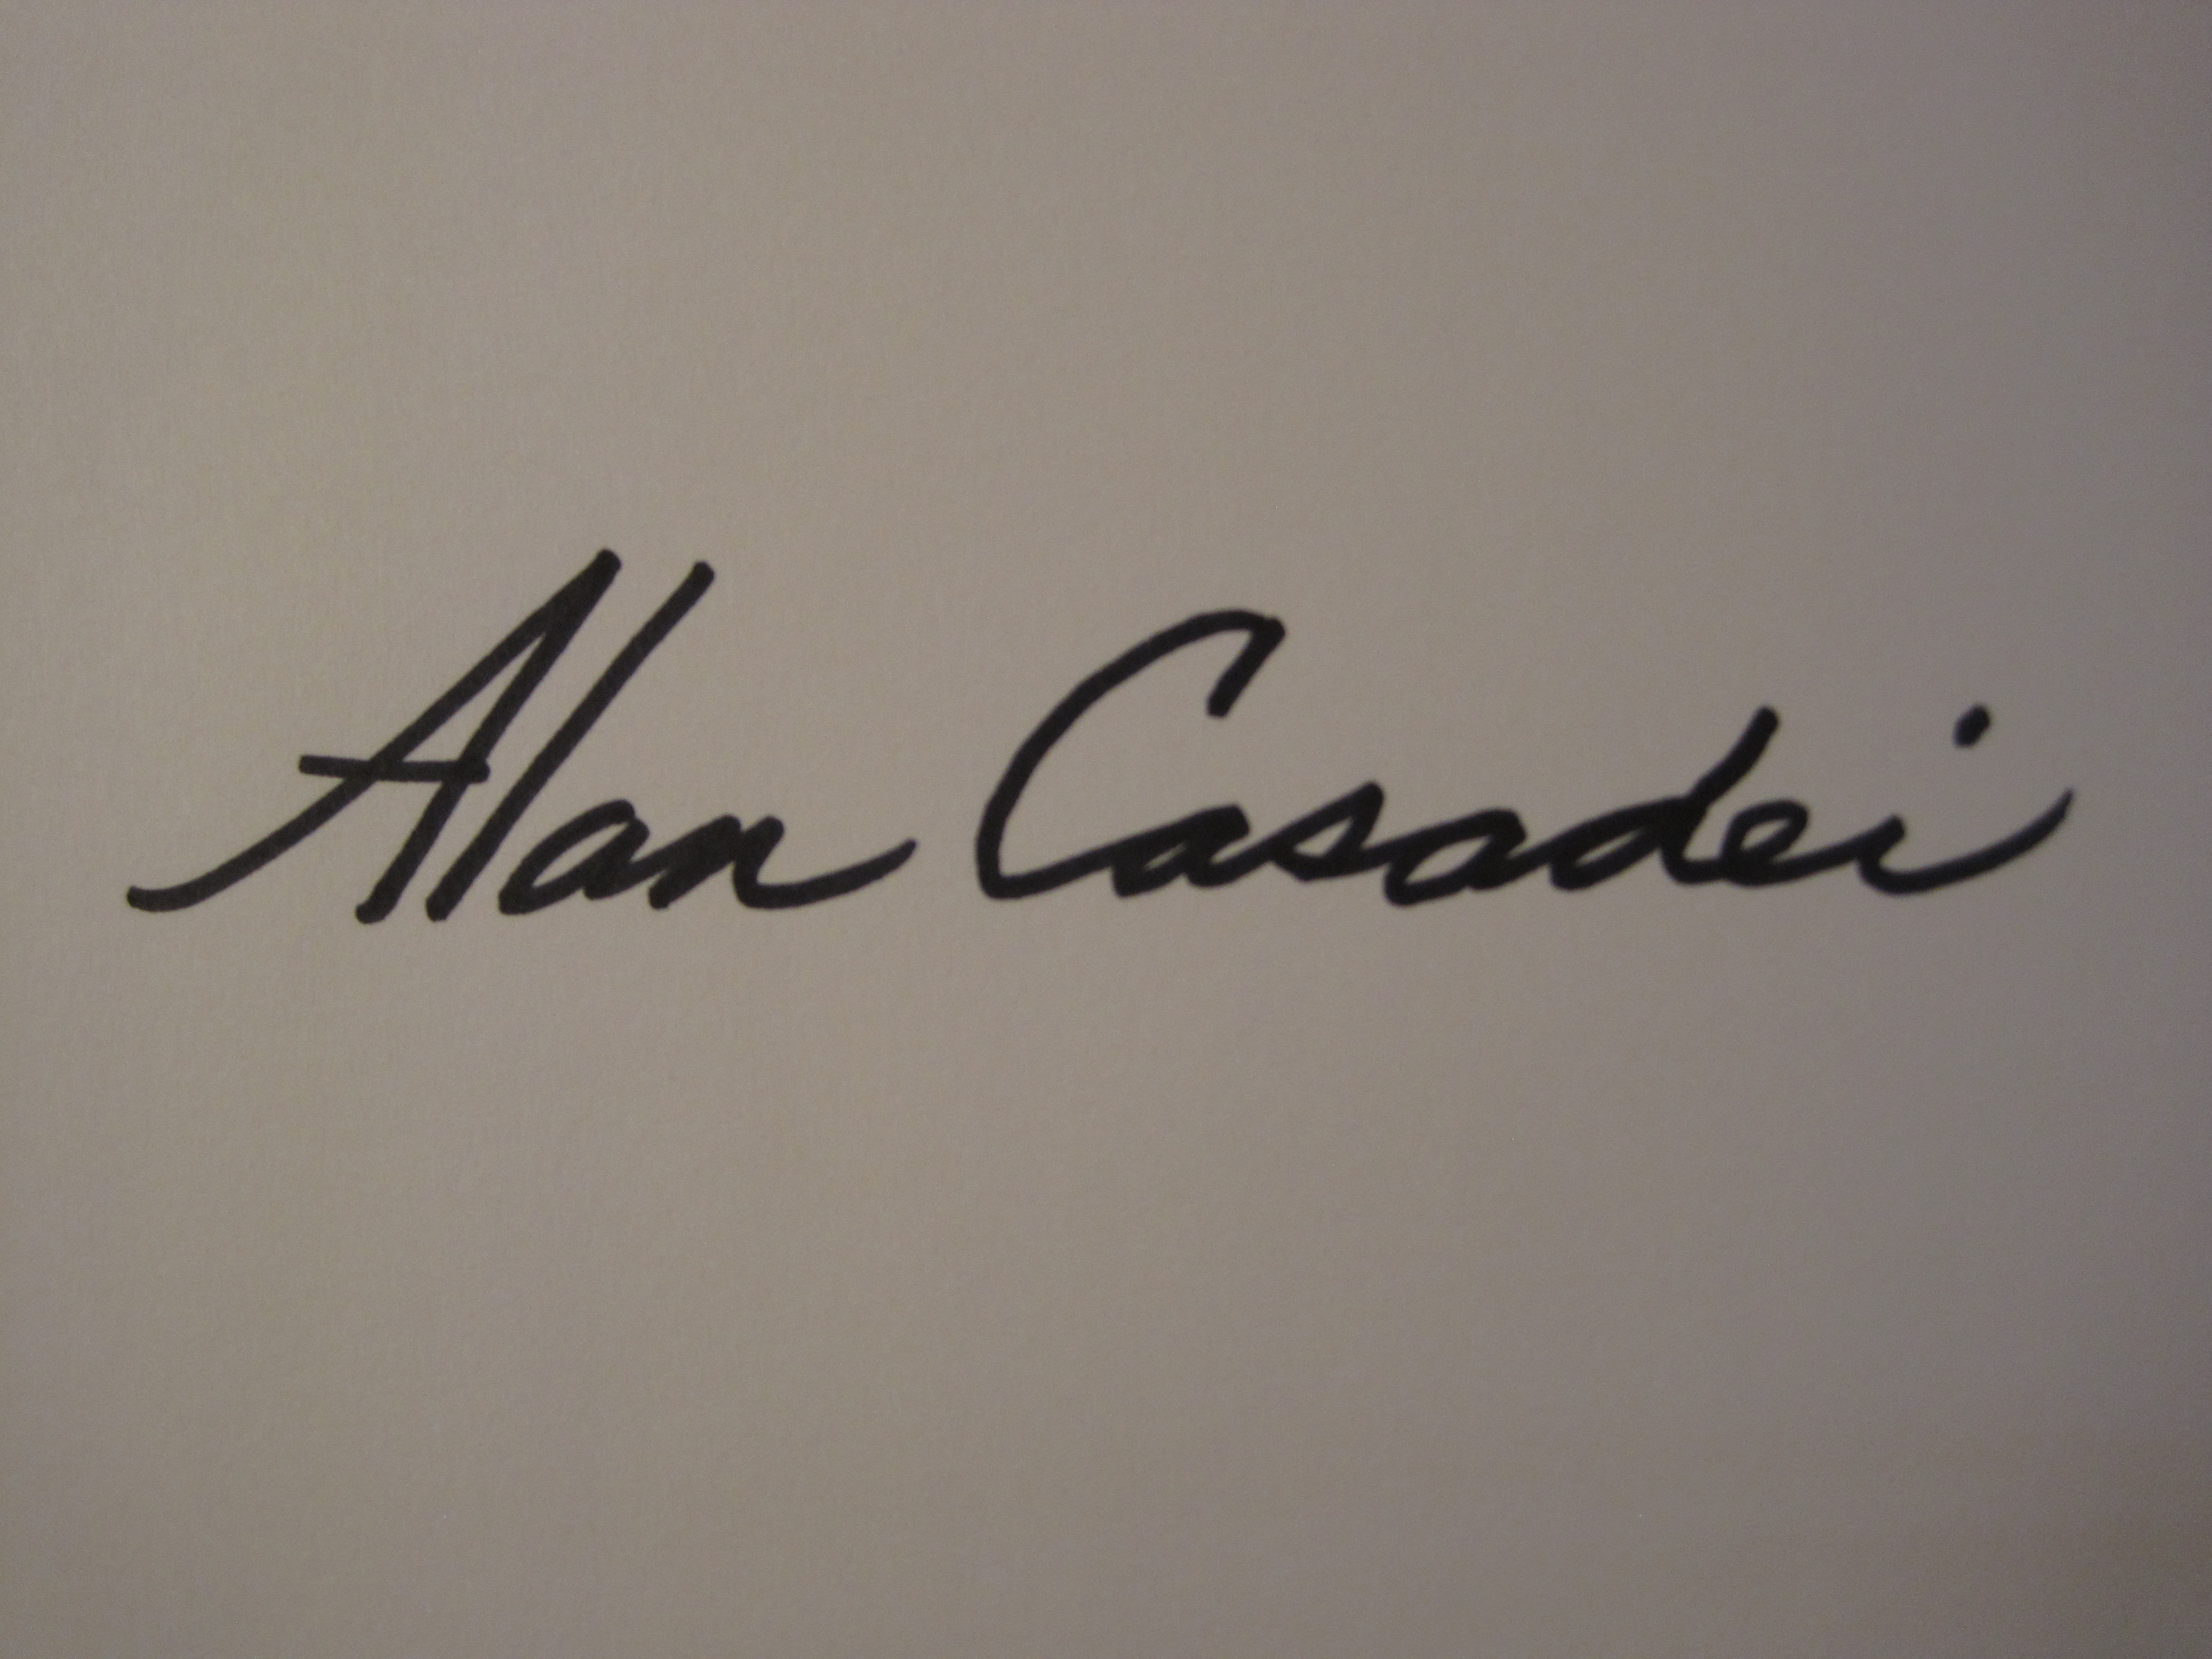 Alan Casadei Signature